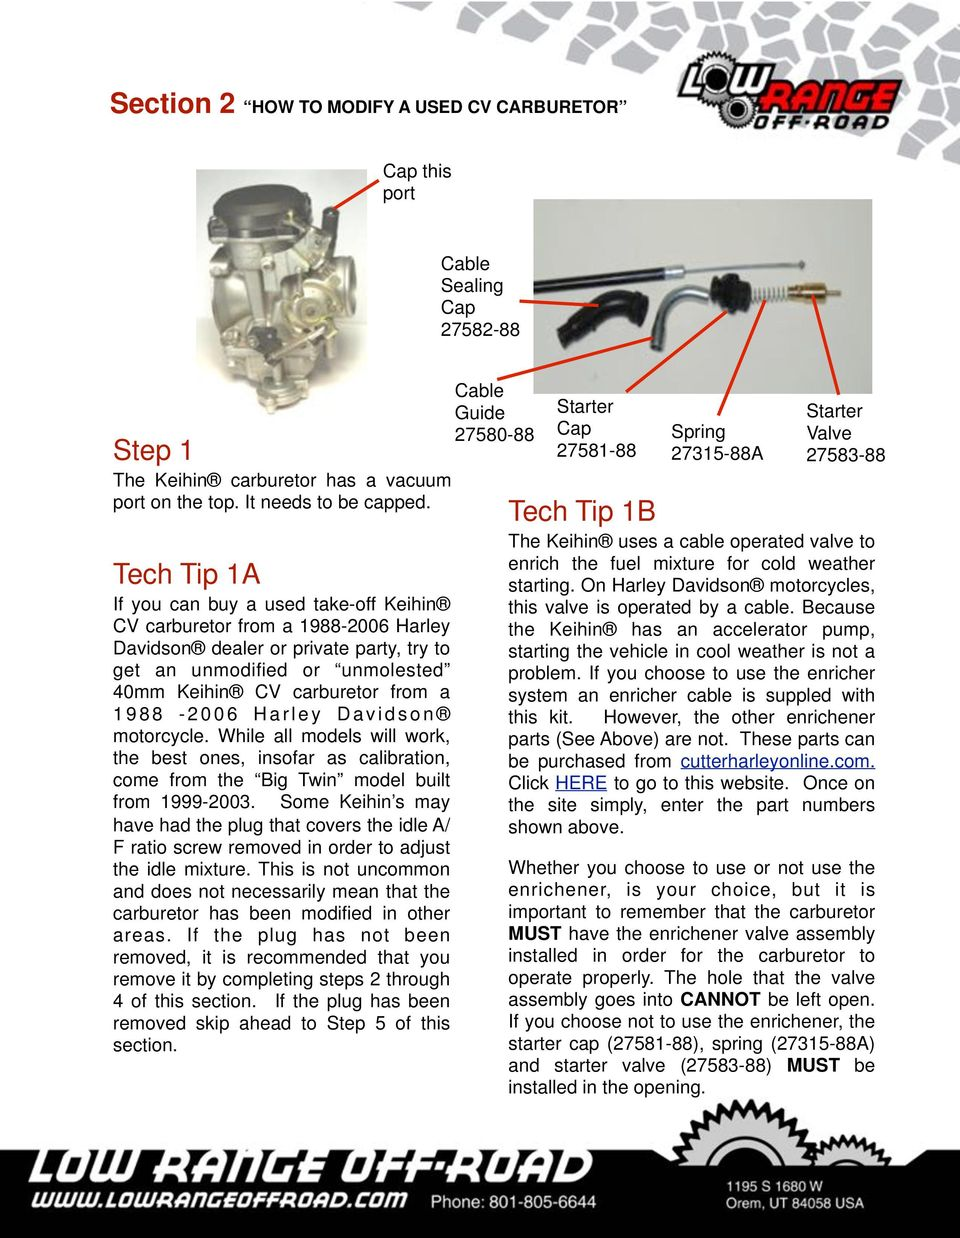 Installation Instructions Pdf Davidson Cv Carburetor Diagram Get Free Image About Wiring 1988 2006 Harley Motorcycle While All Models Will Work The Best Ones